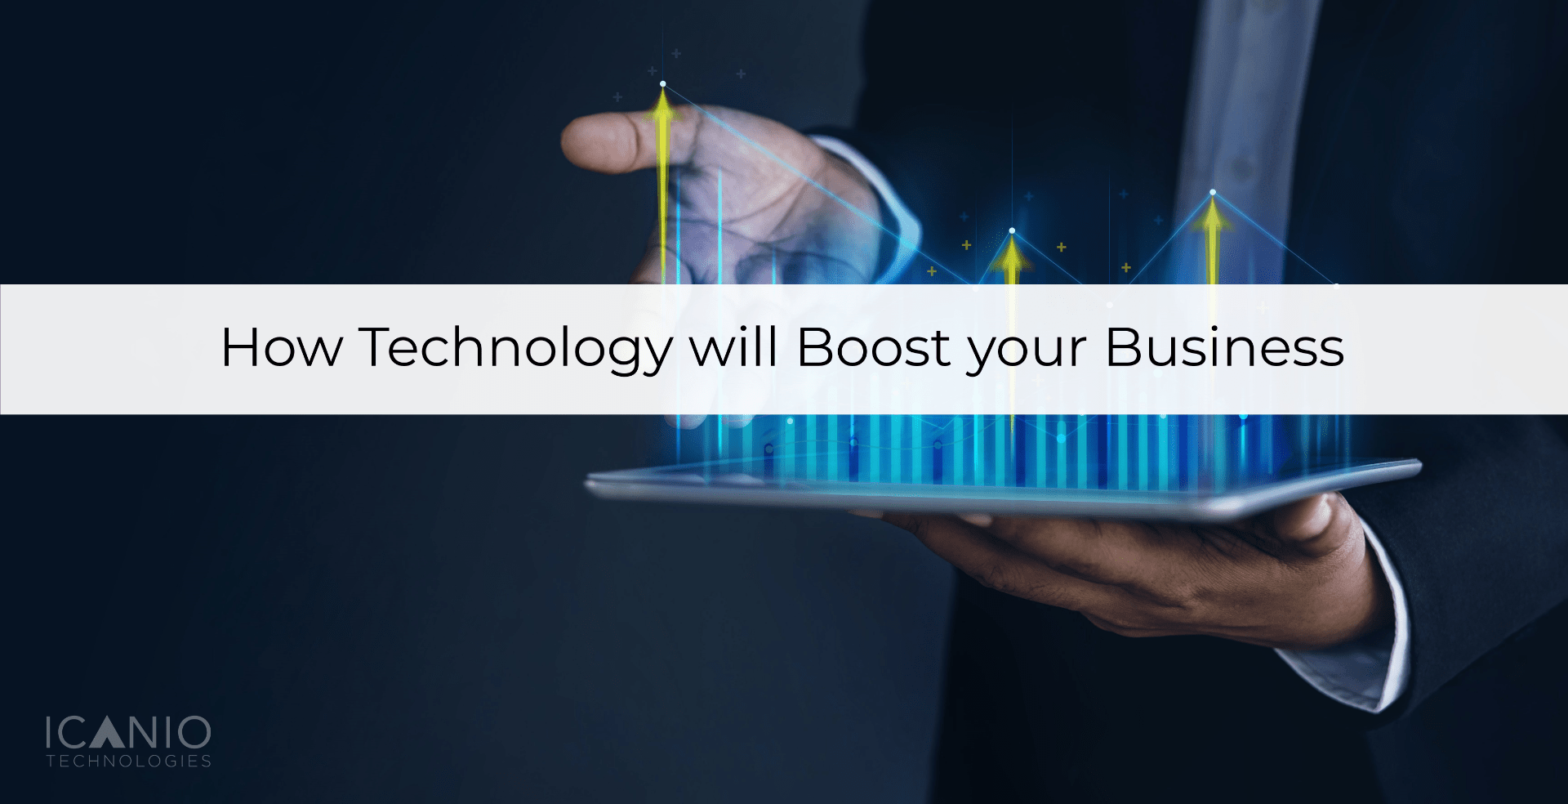 Boosting your business with technology